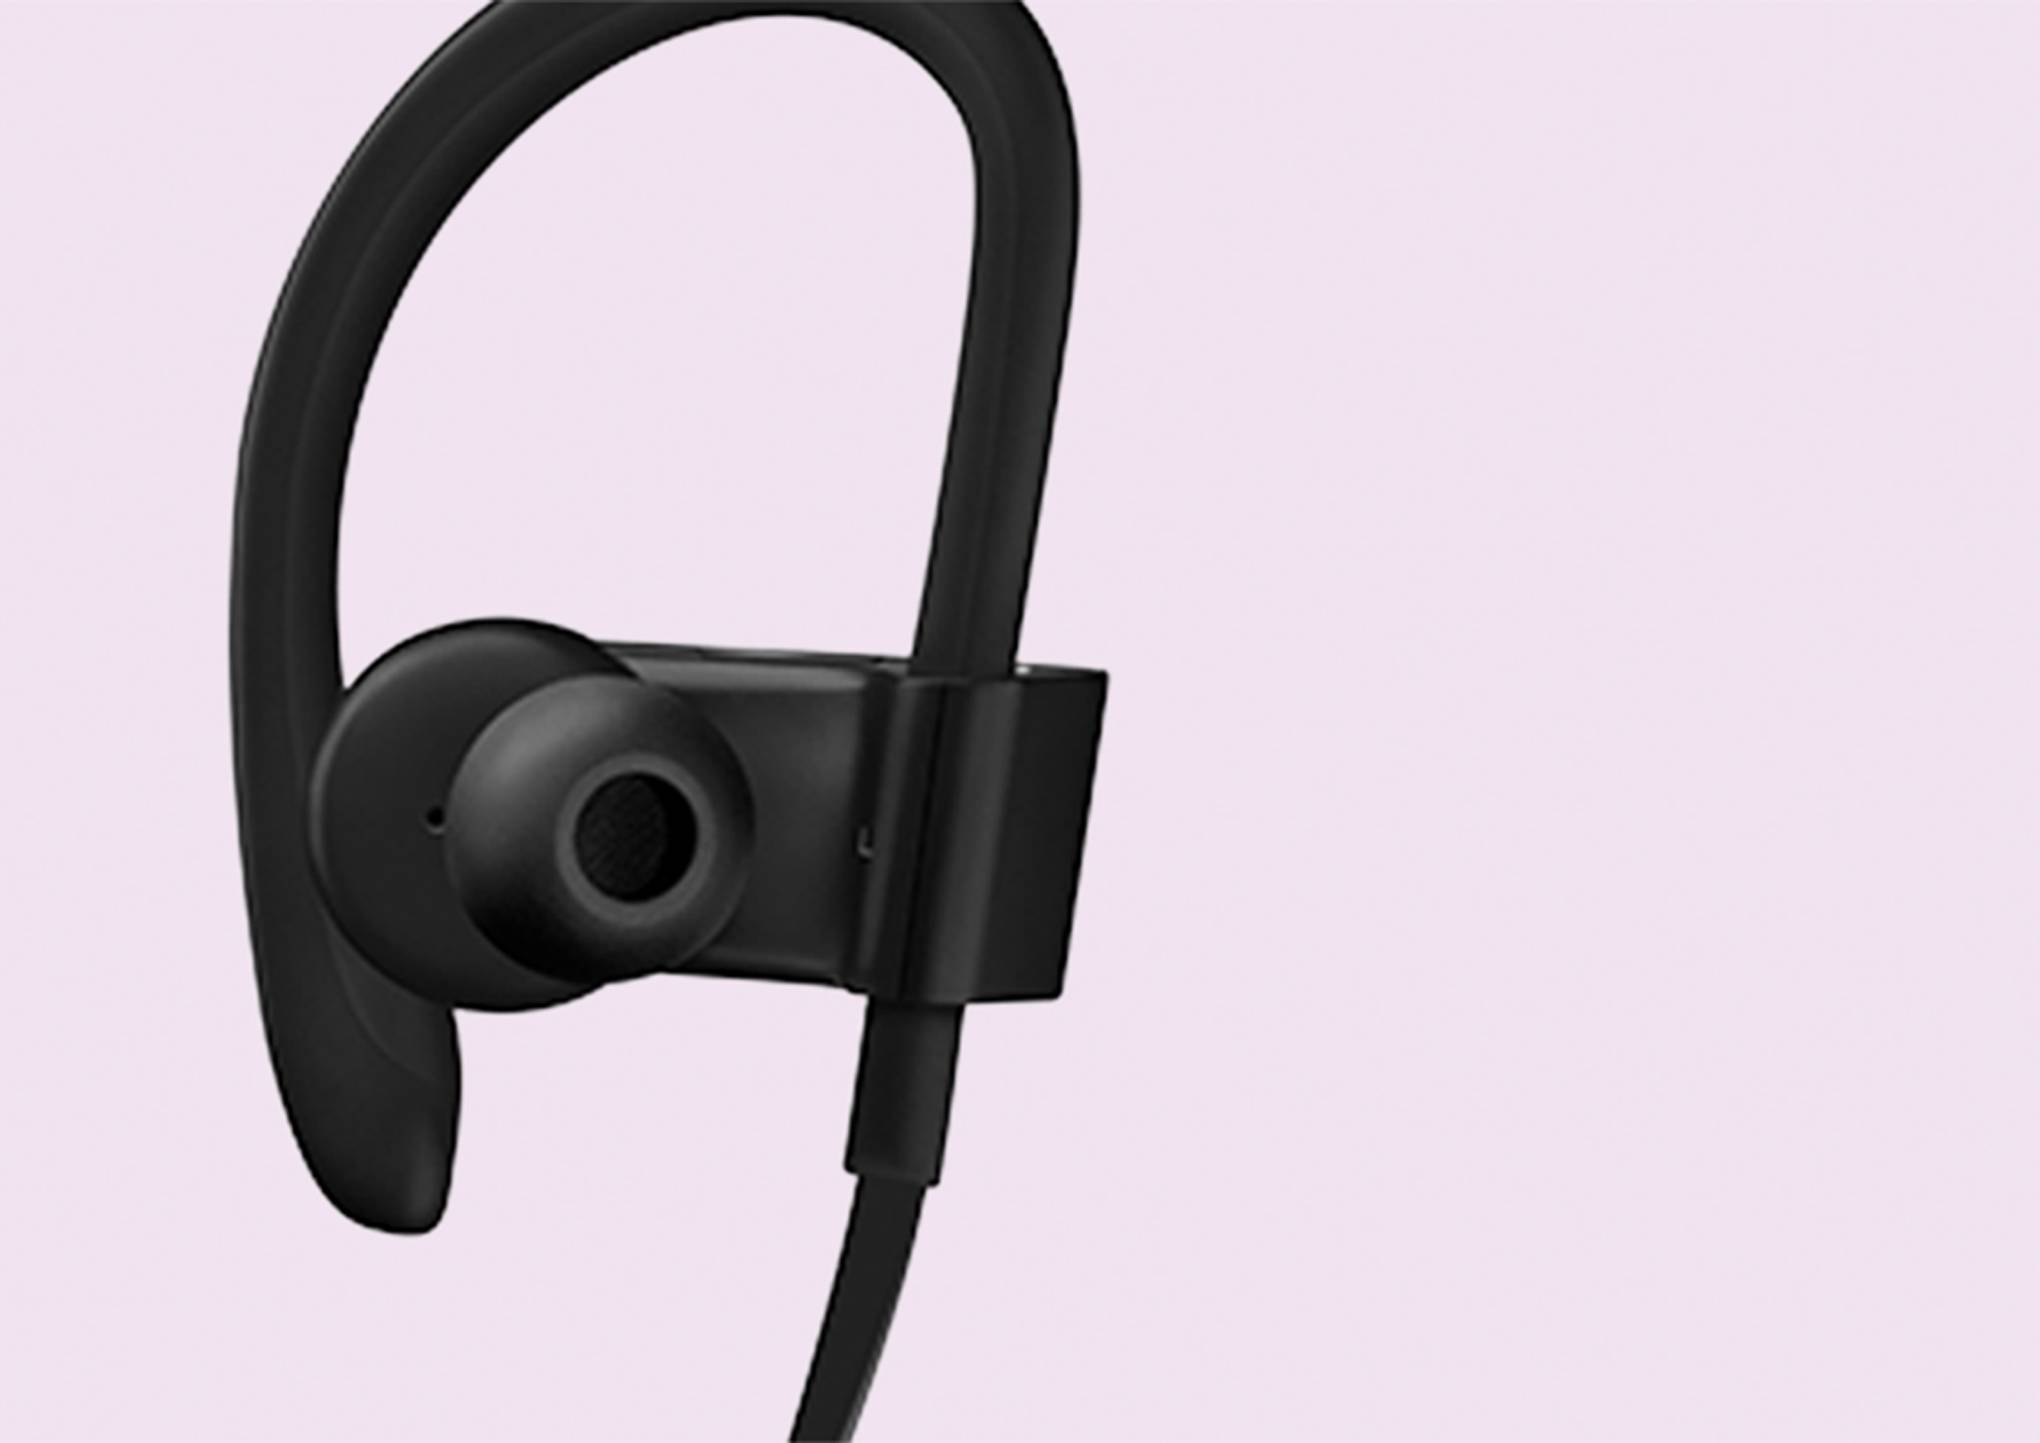 The best headphones for running and the gym in 2018 | WIRED UK